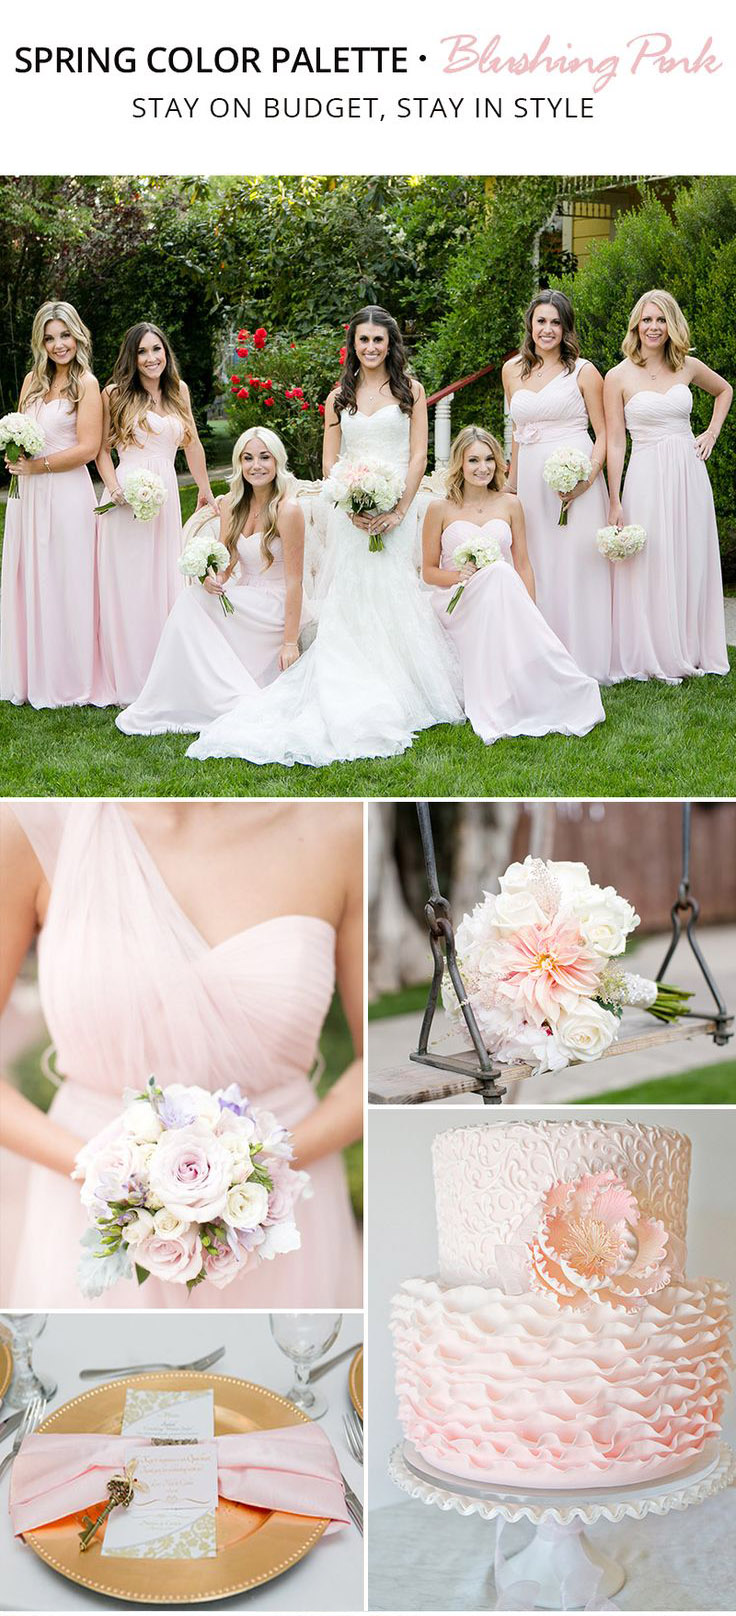 Trending Spring Color Palette for Your Bridesmaid Dresses-blushing-pink